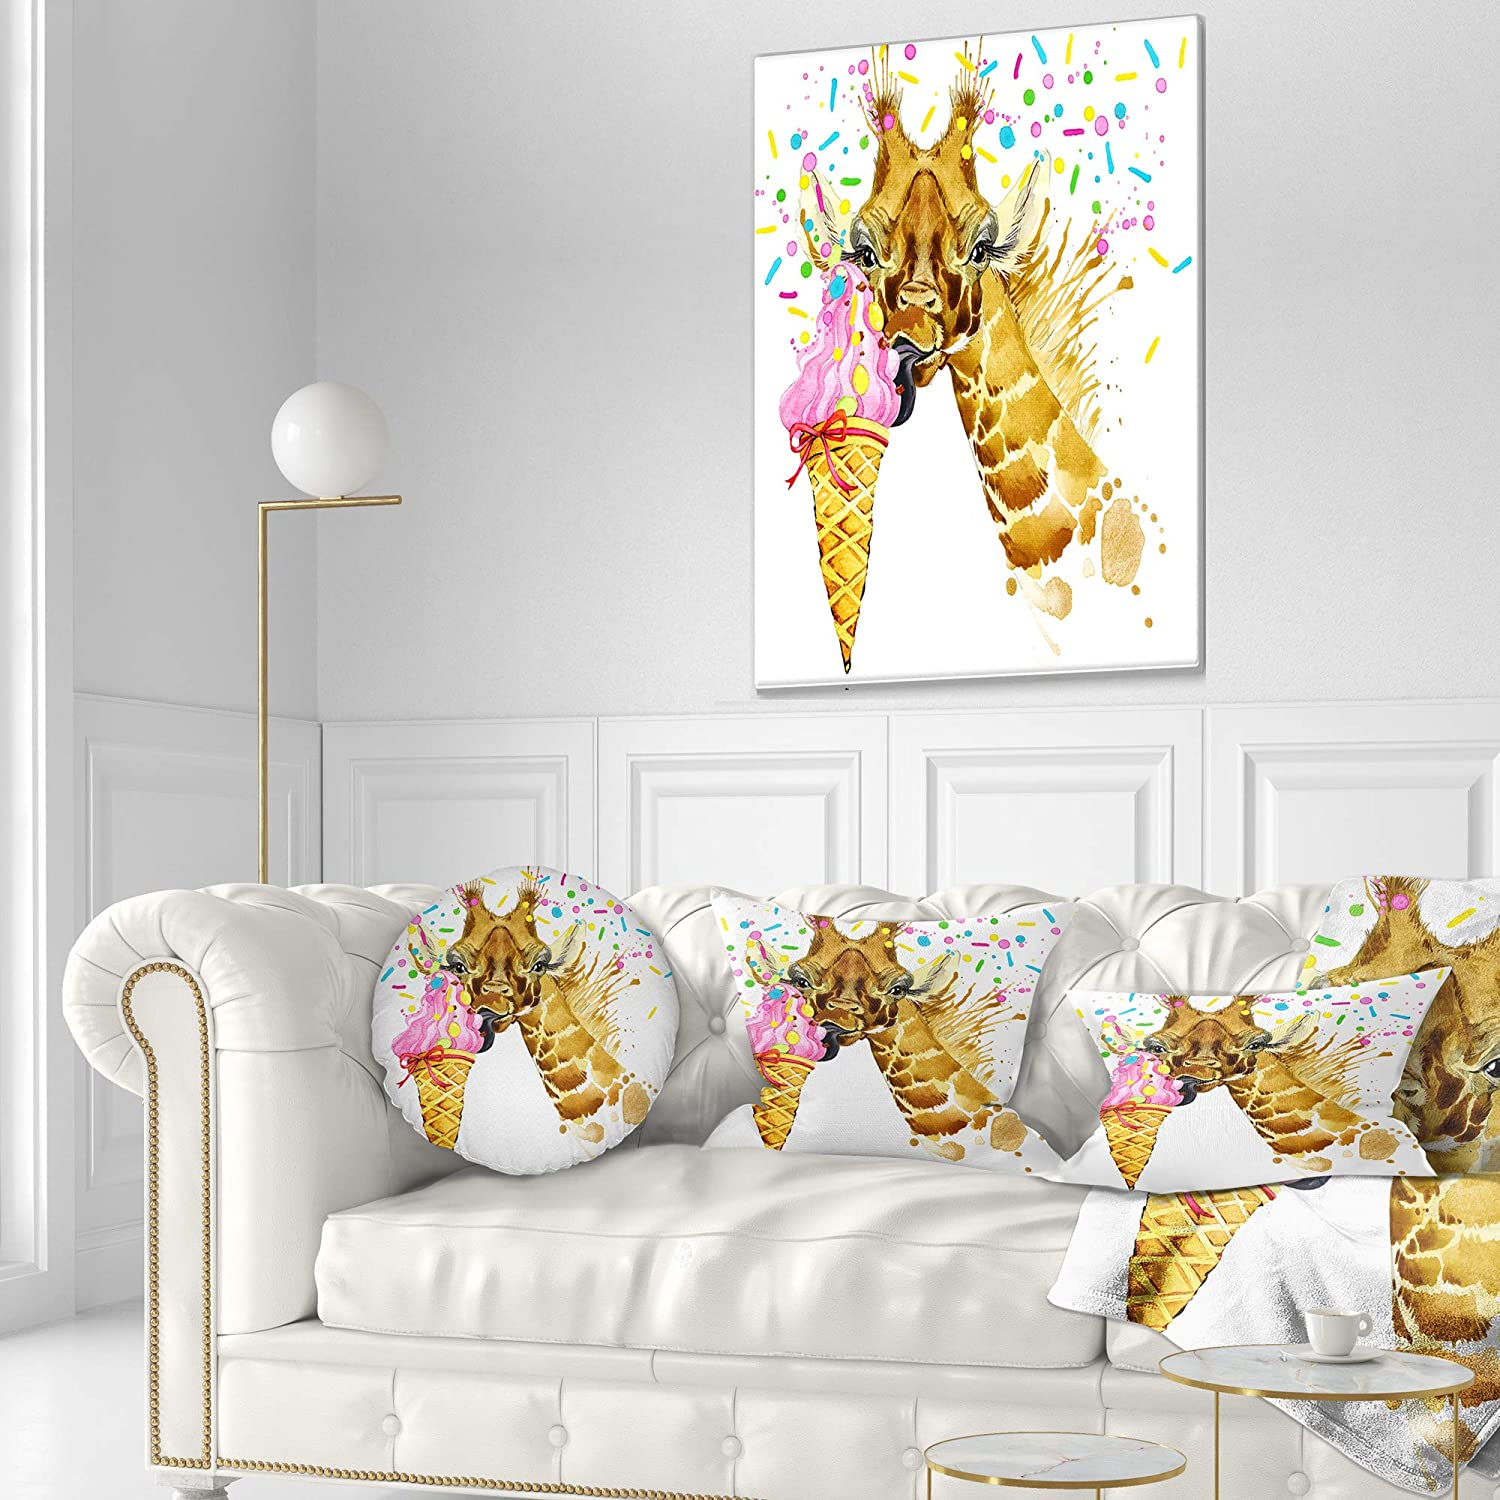 x 20 in Throw Pillow 12 in Designart CU13209-12-20 Giraffe Eating Ice Cream Watercolor Contemporary Animal Lumbar Cushion Cover for Living Room Sofa Insert Printed On Both Side